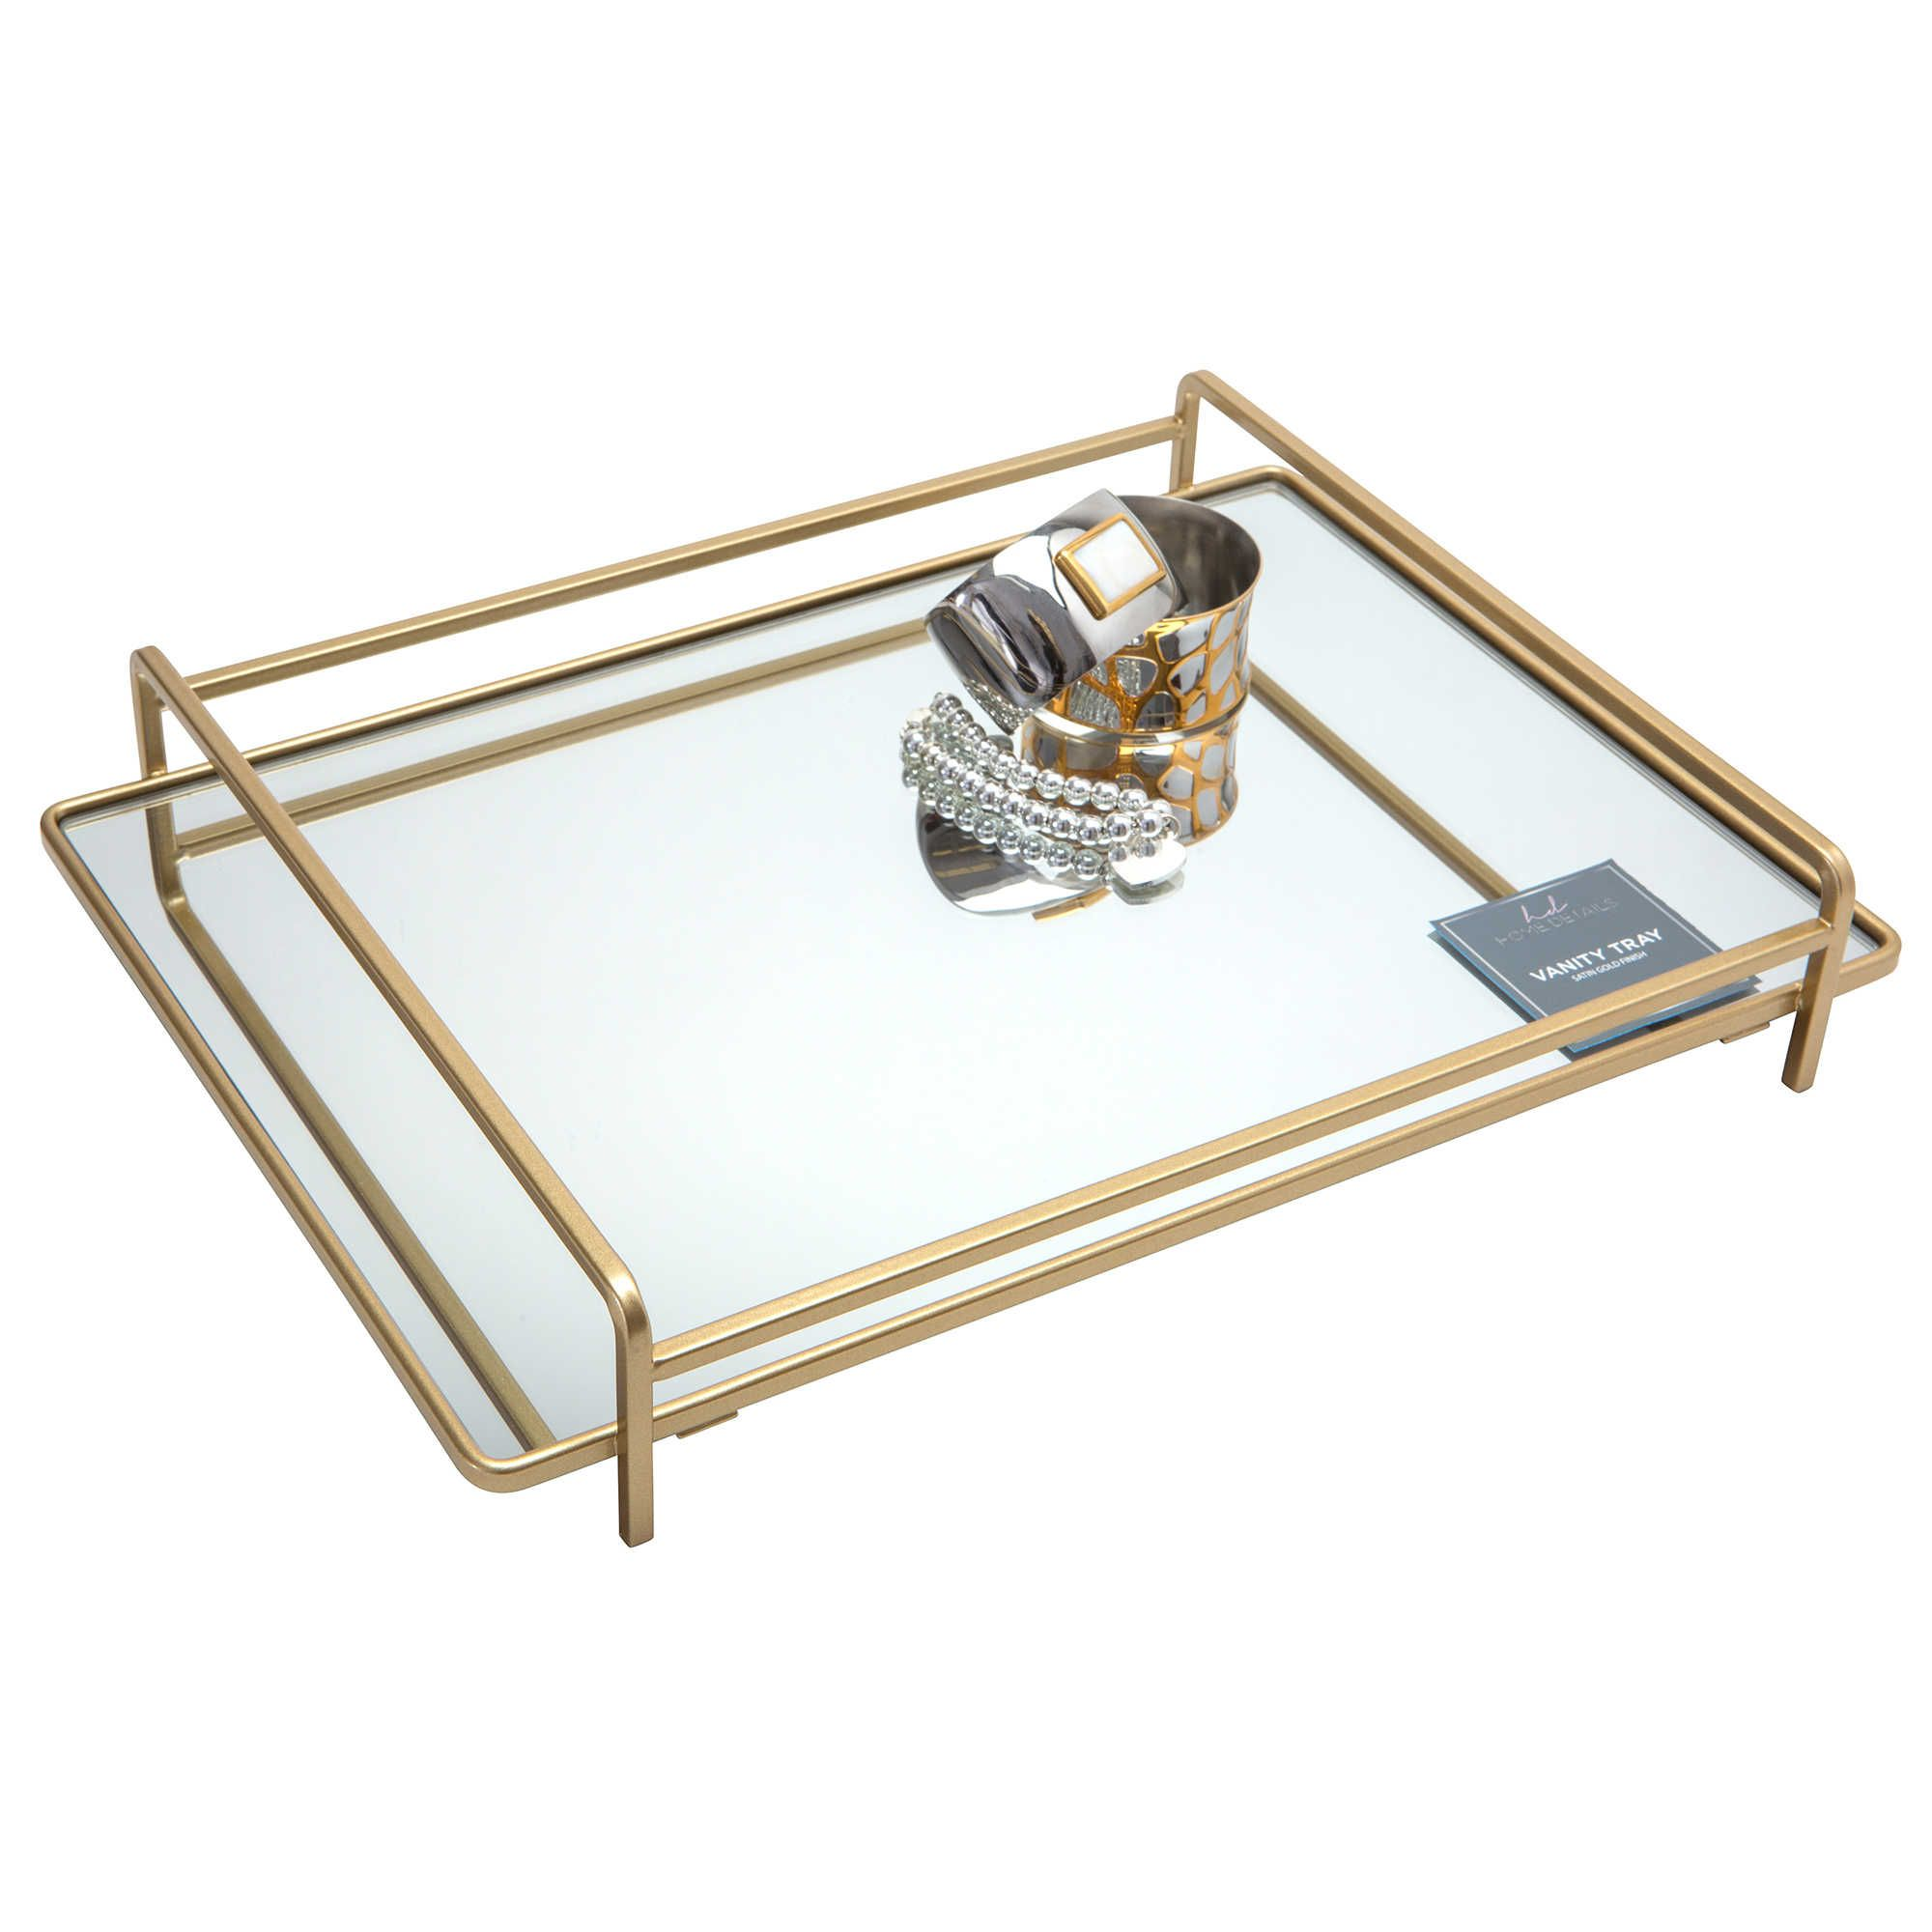 Home Details 4Rail Large Vanity Mirror Tray in Gold